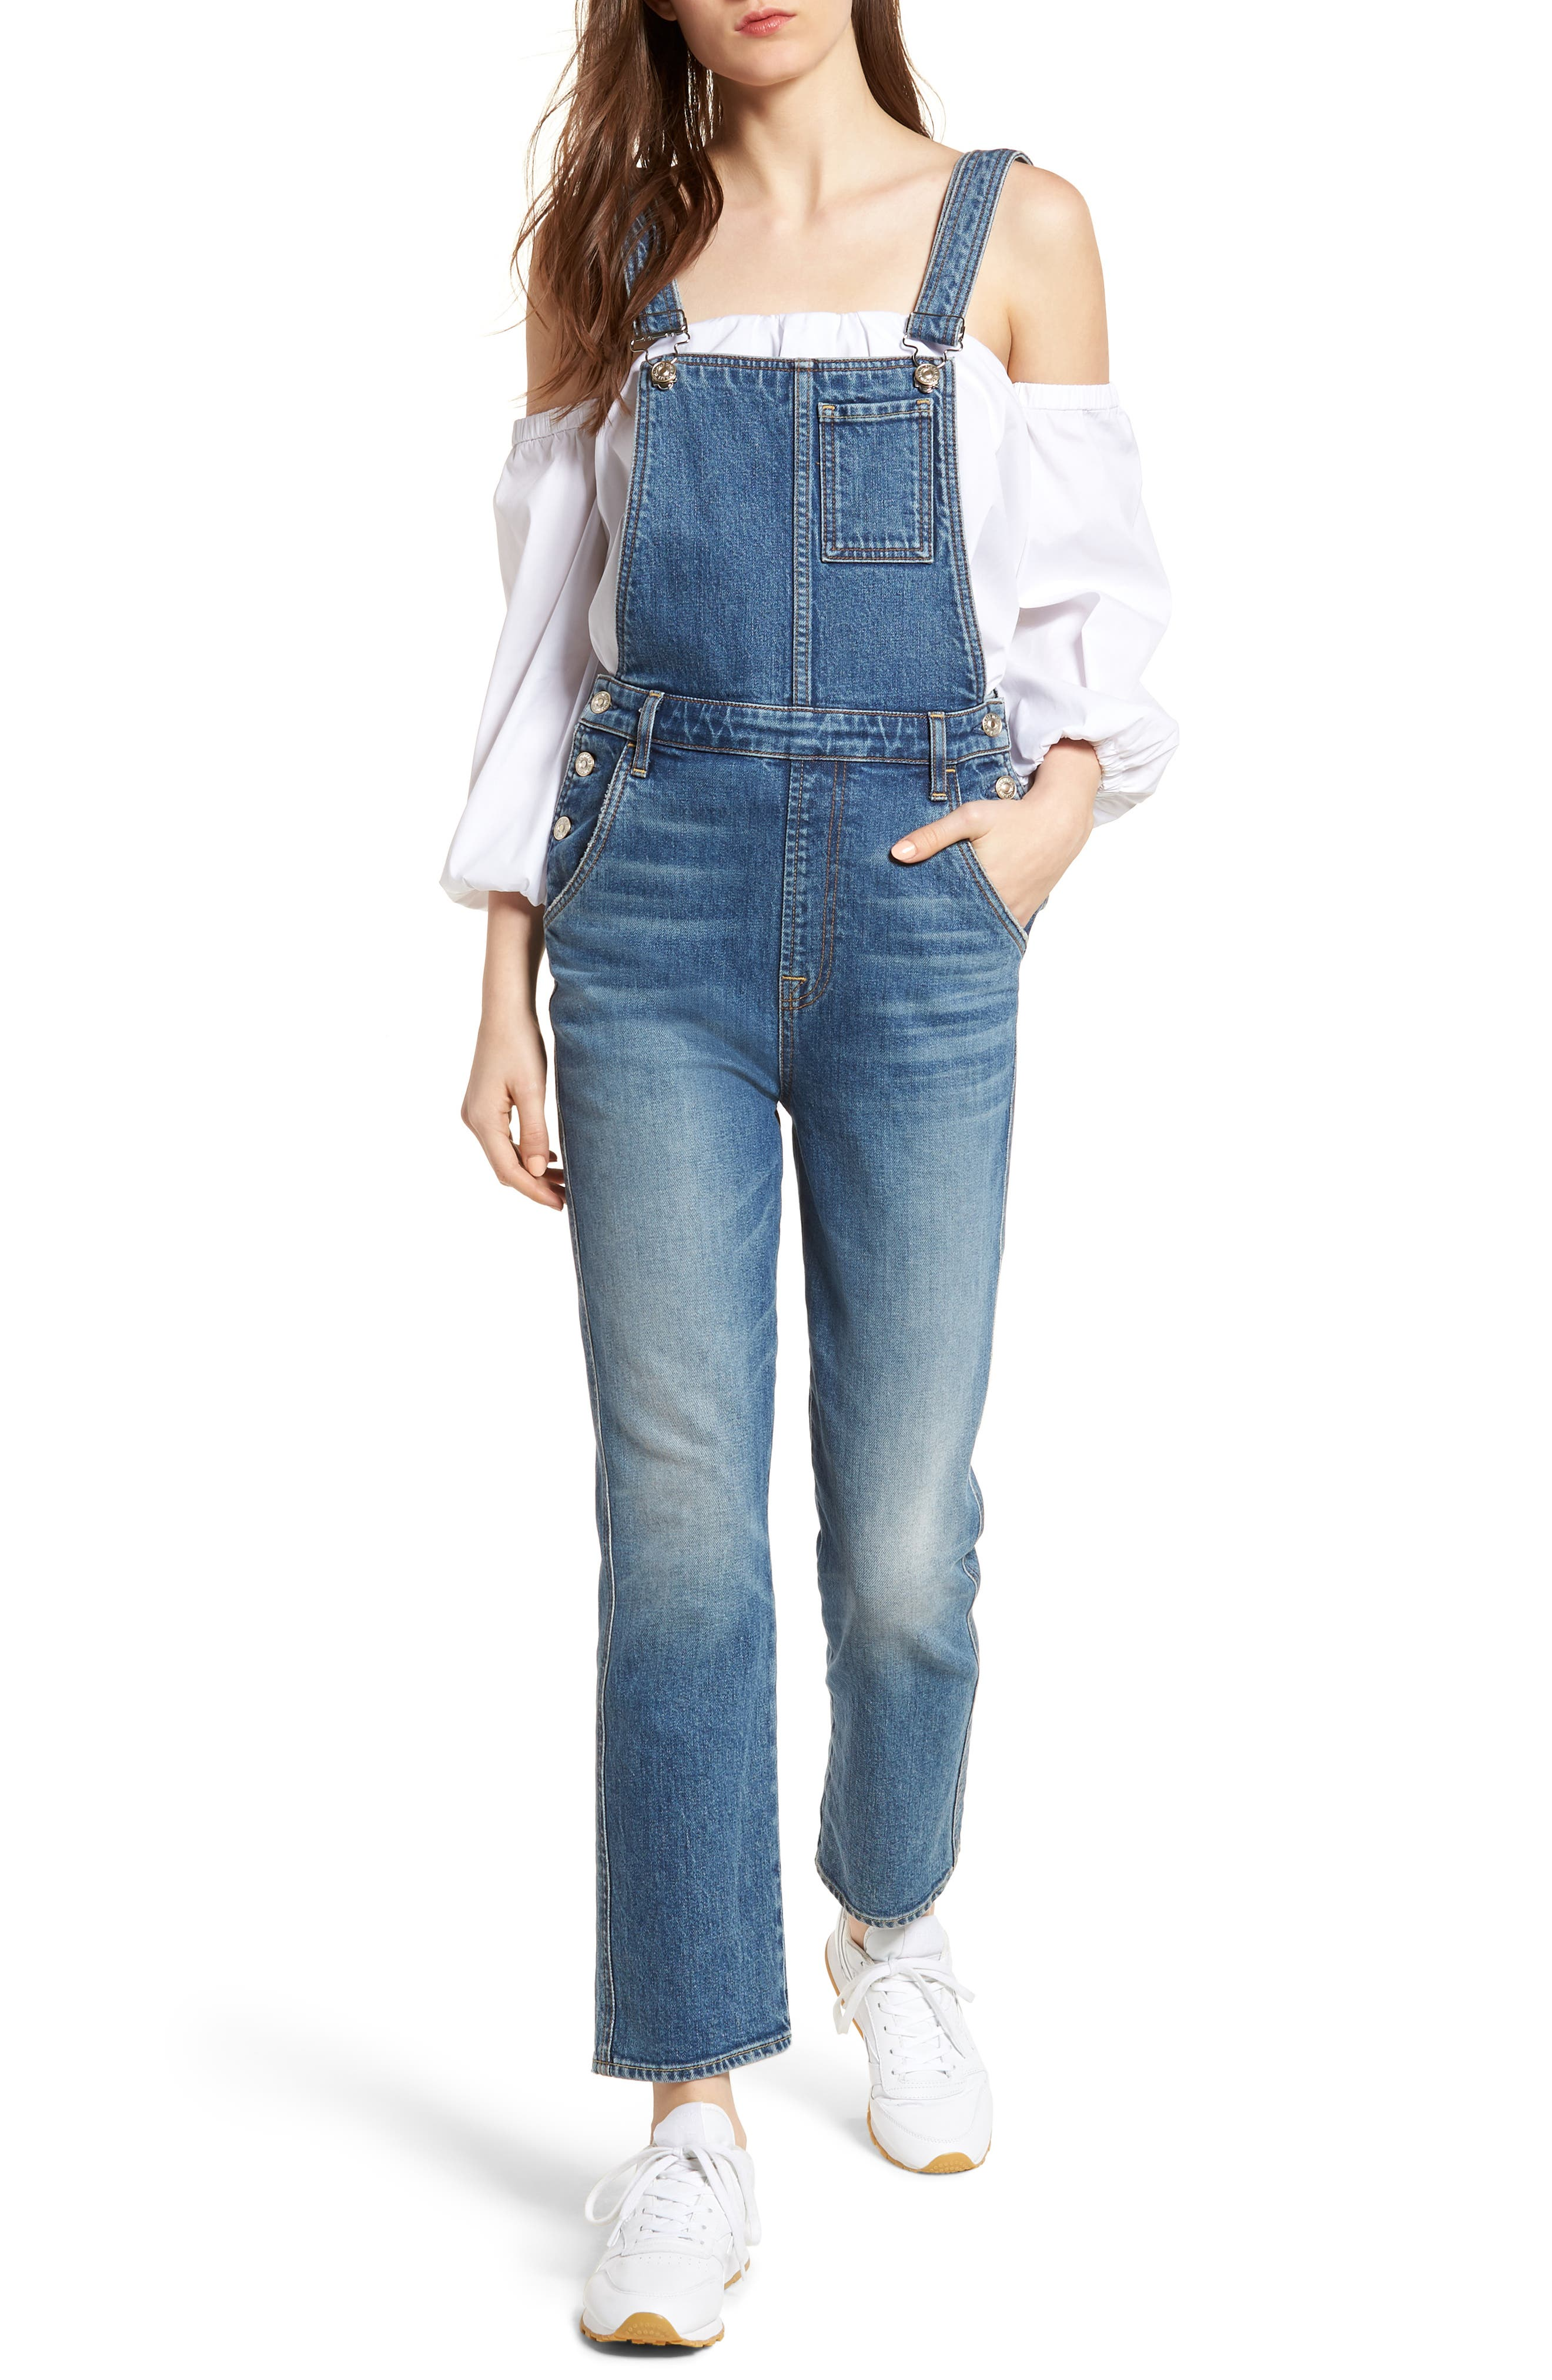 Edie Denim Overalls,                             Main thumbnail 1, color,                             401